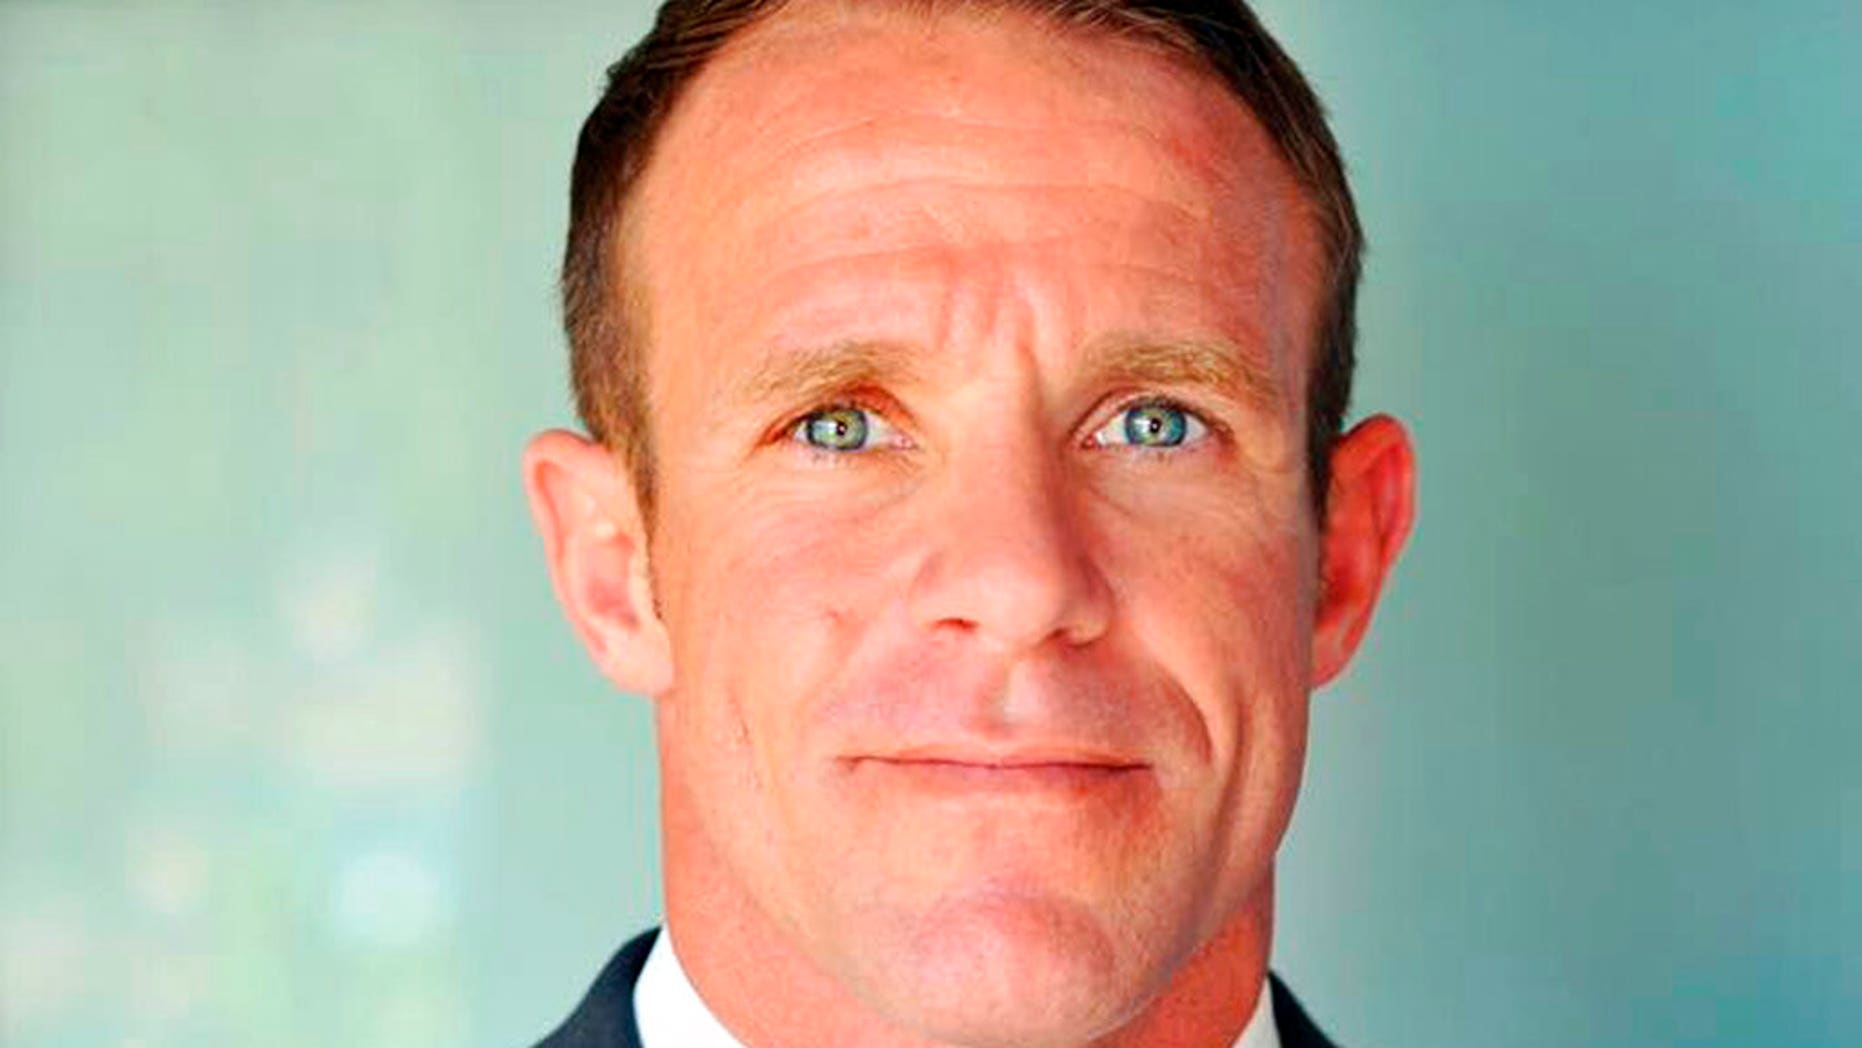 FILE: Navy SEAL Edward Gallagher, who has been accused of murder in 2017, died of an Iraqi prisoner of war.